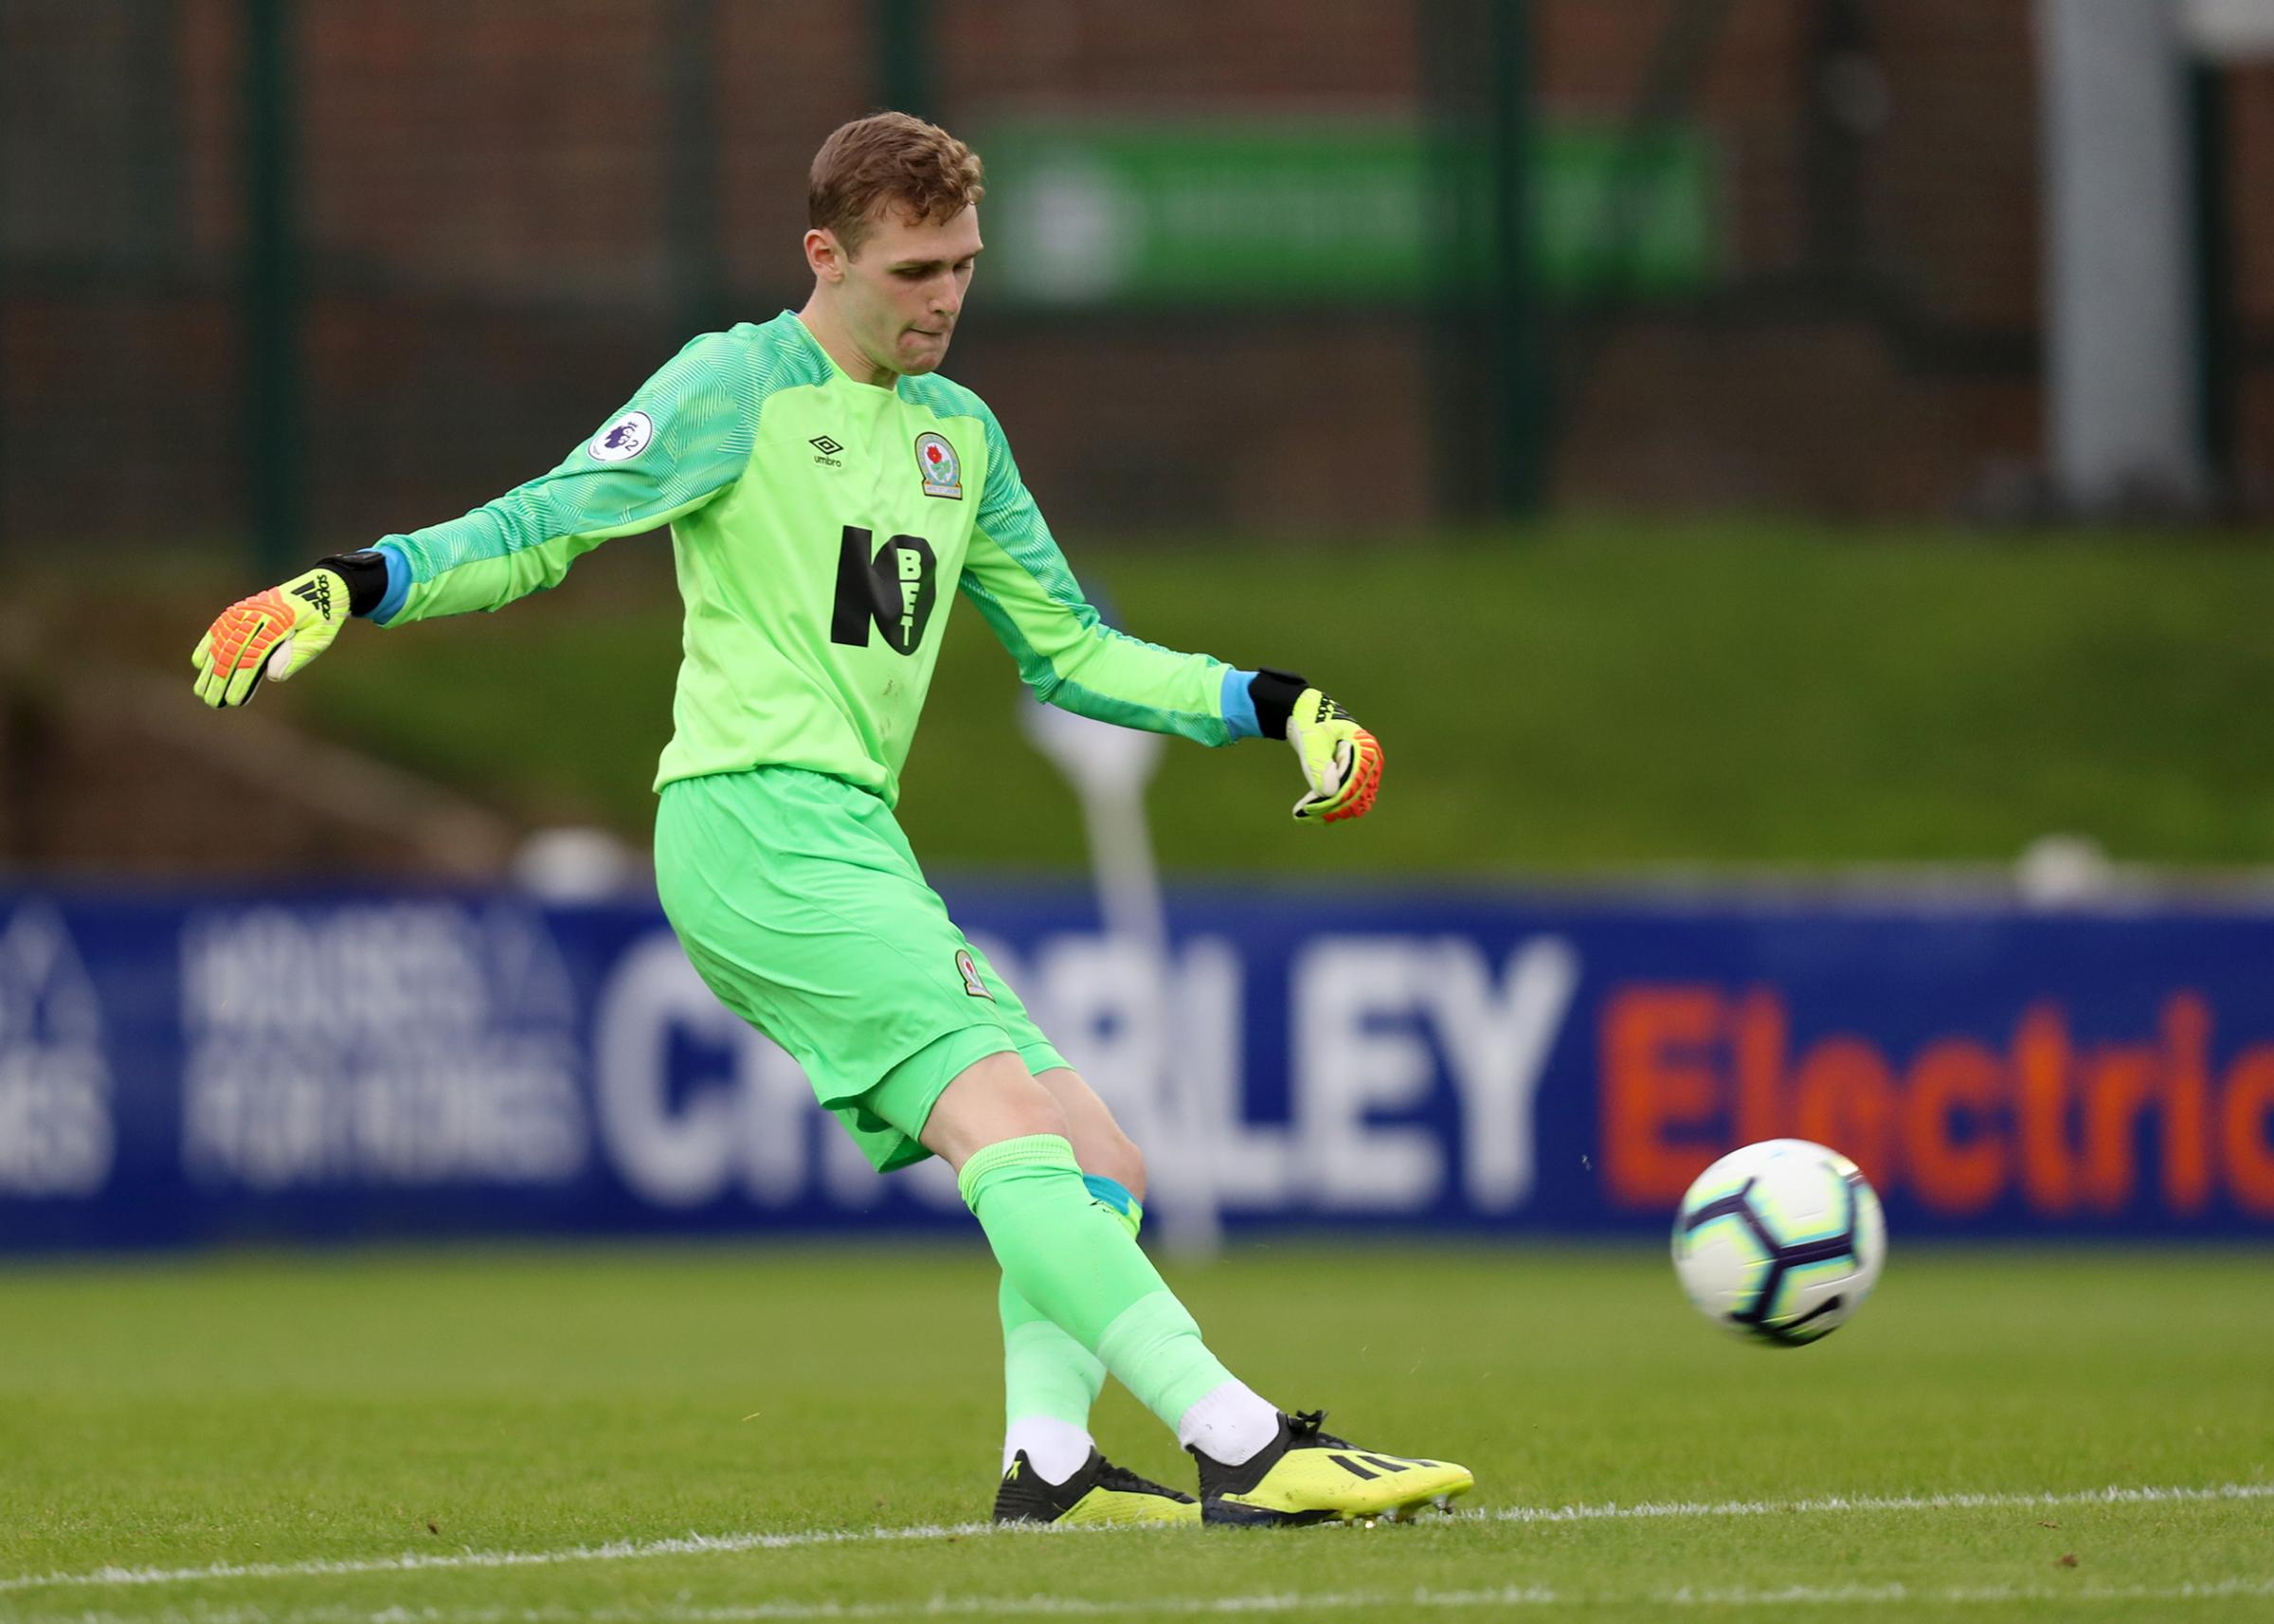 Rovers goalkeeper Andrew Fisher joined FC United of Manchester on loan